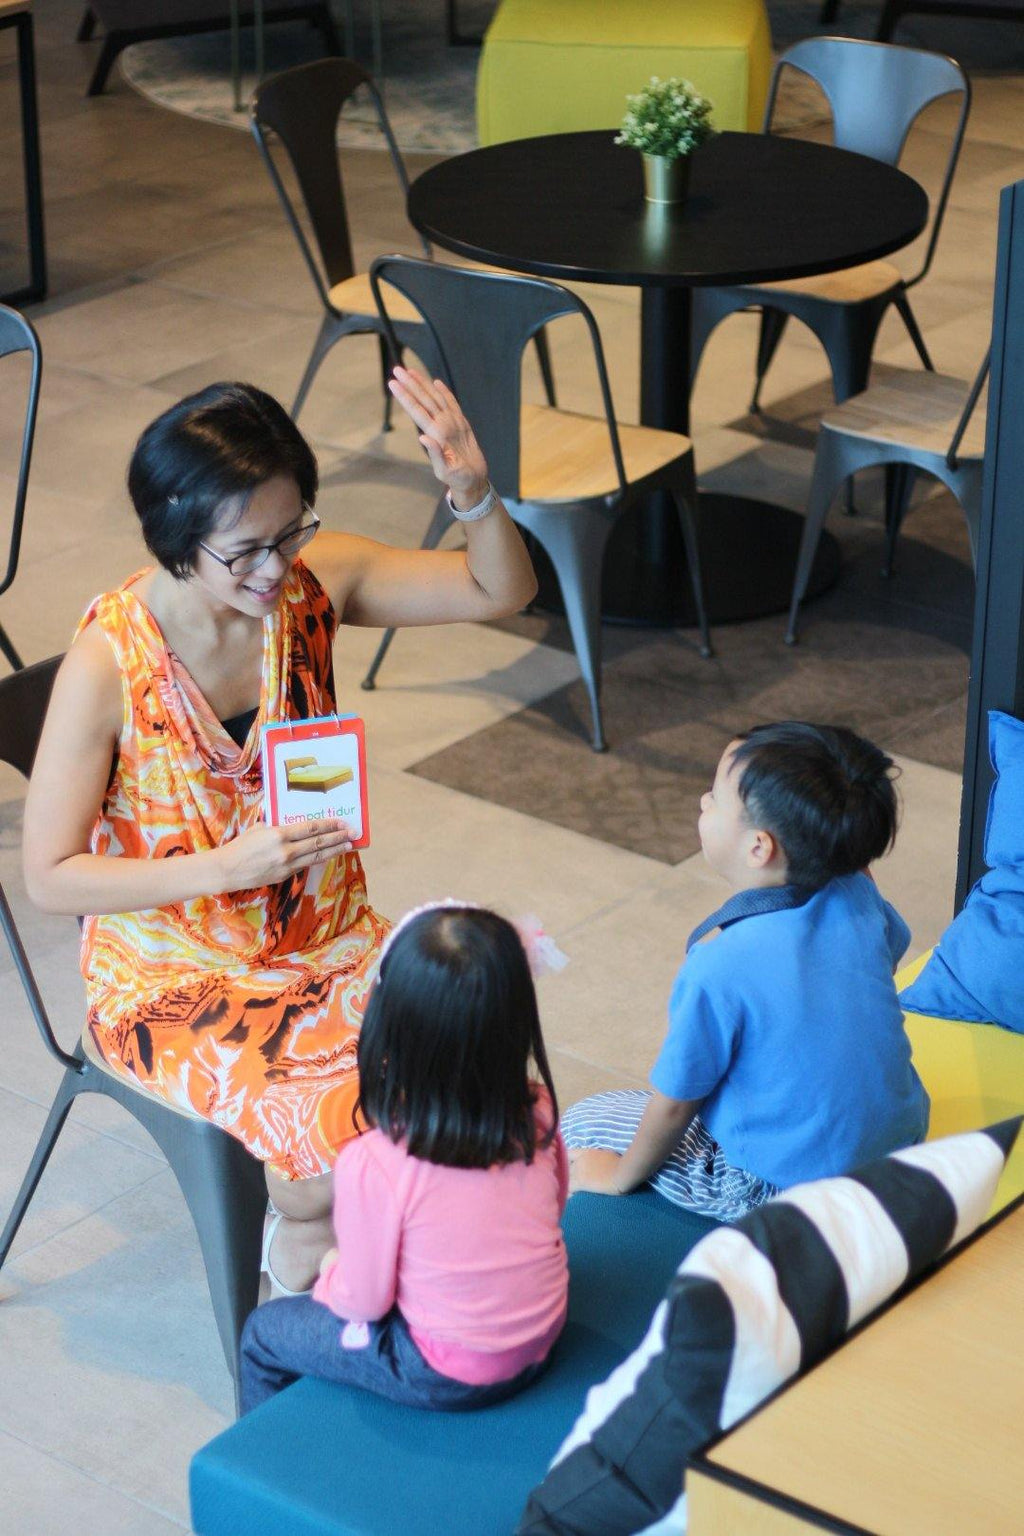 40% Off Learn Indonesian Trial Class For Kids @ Just $39 (U.P. $65)